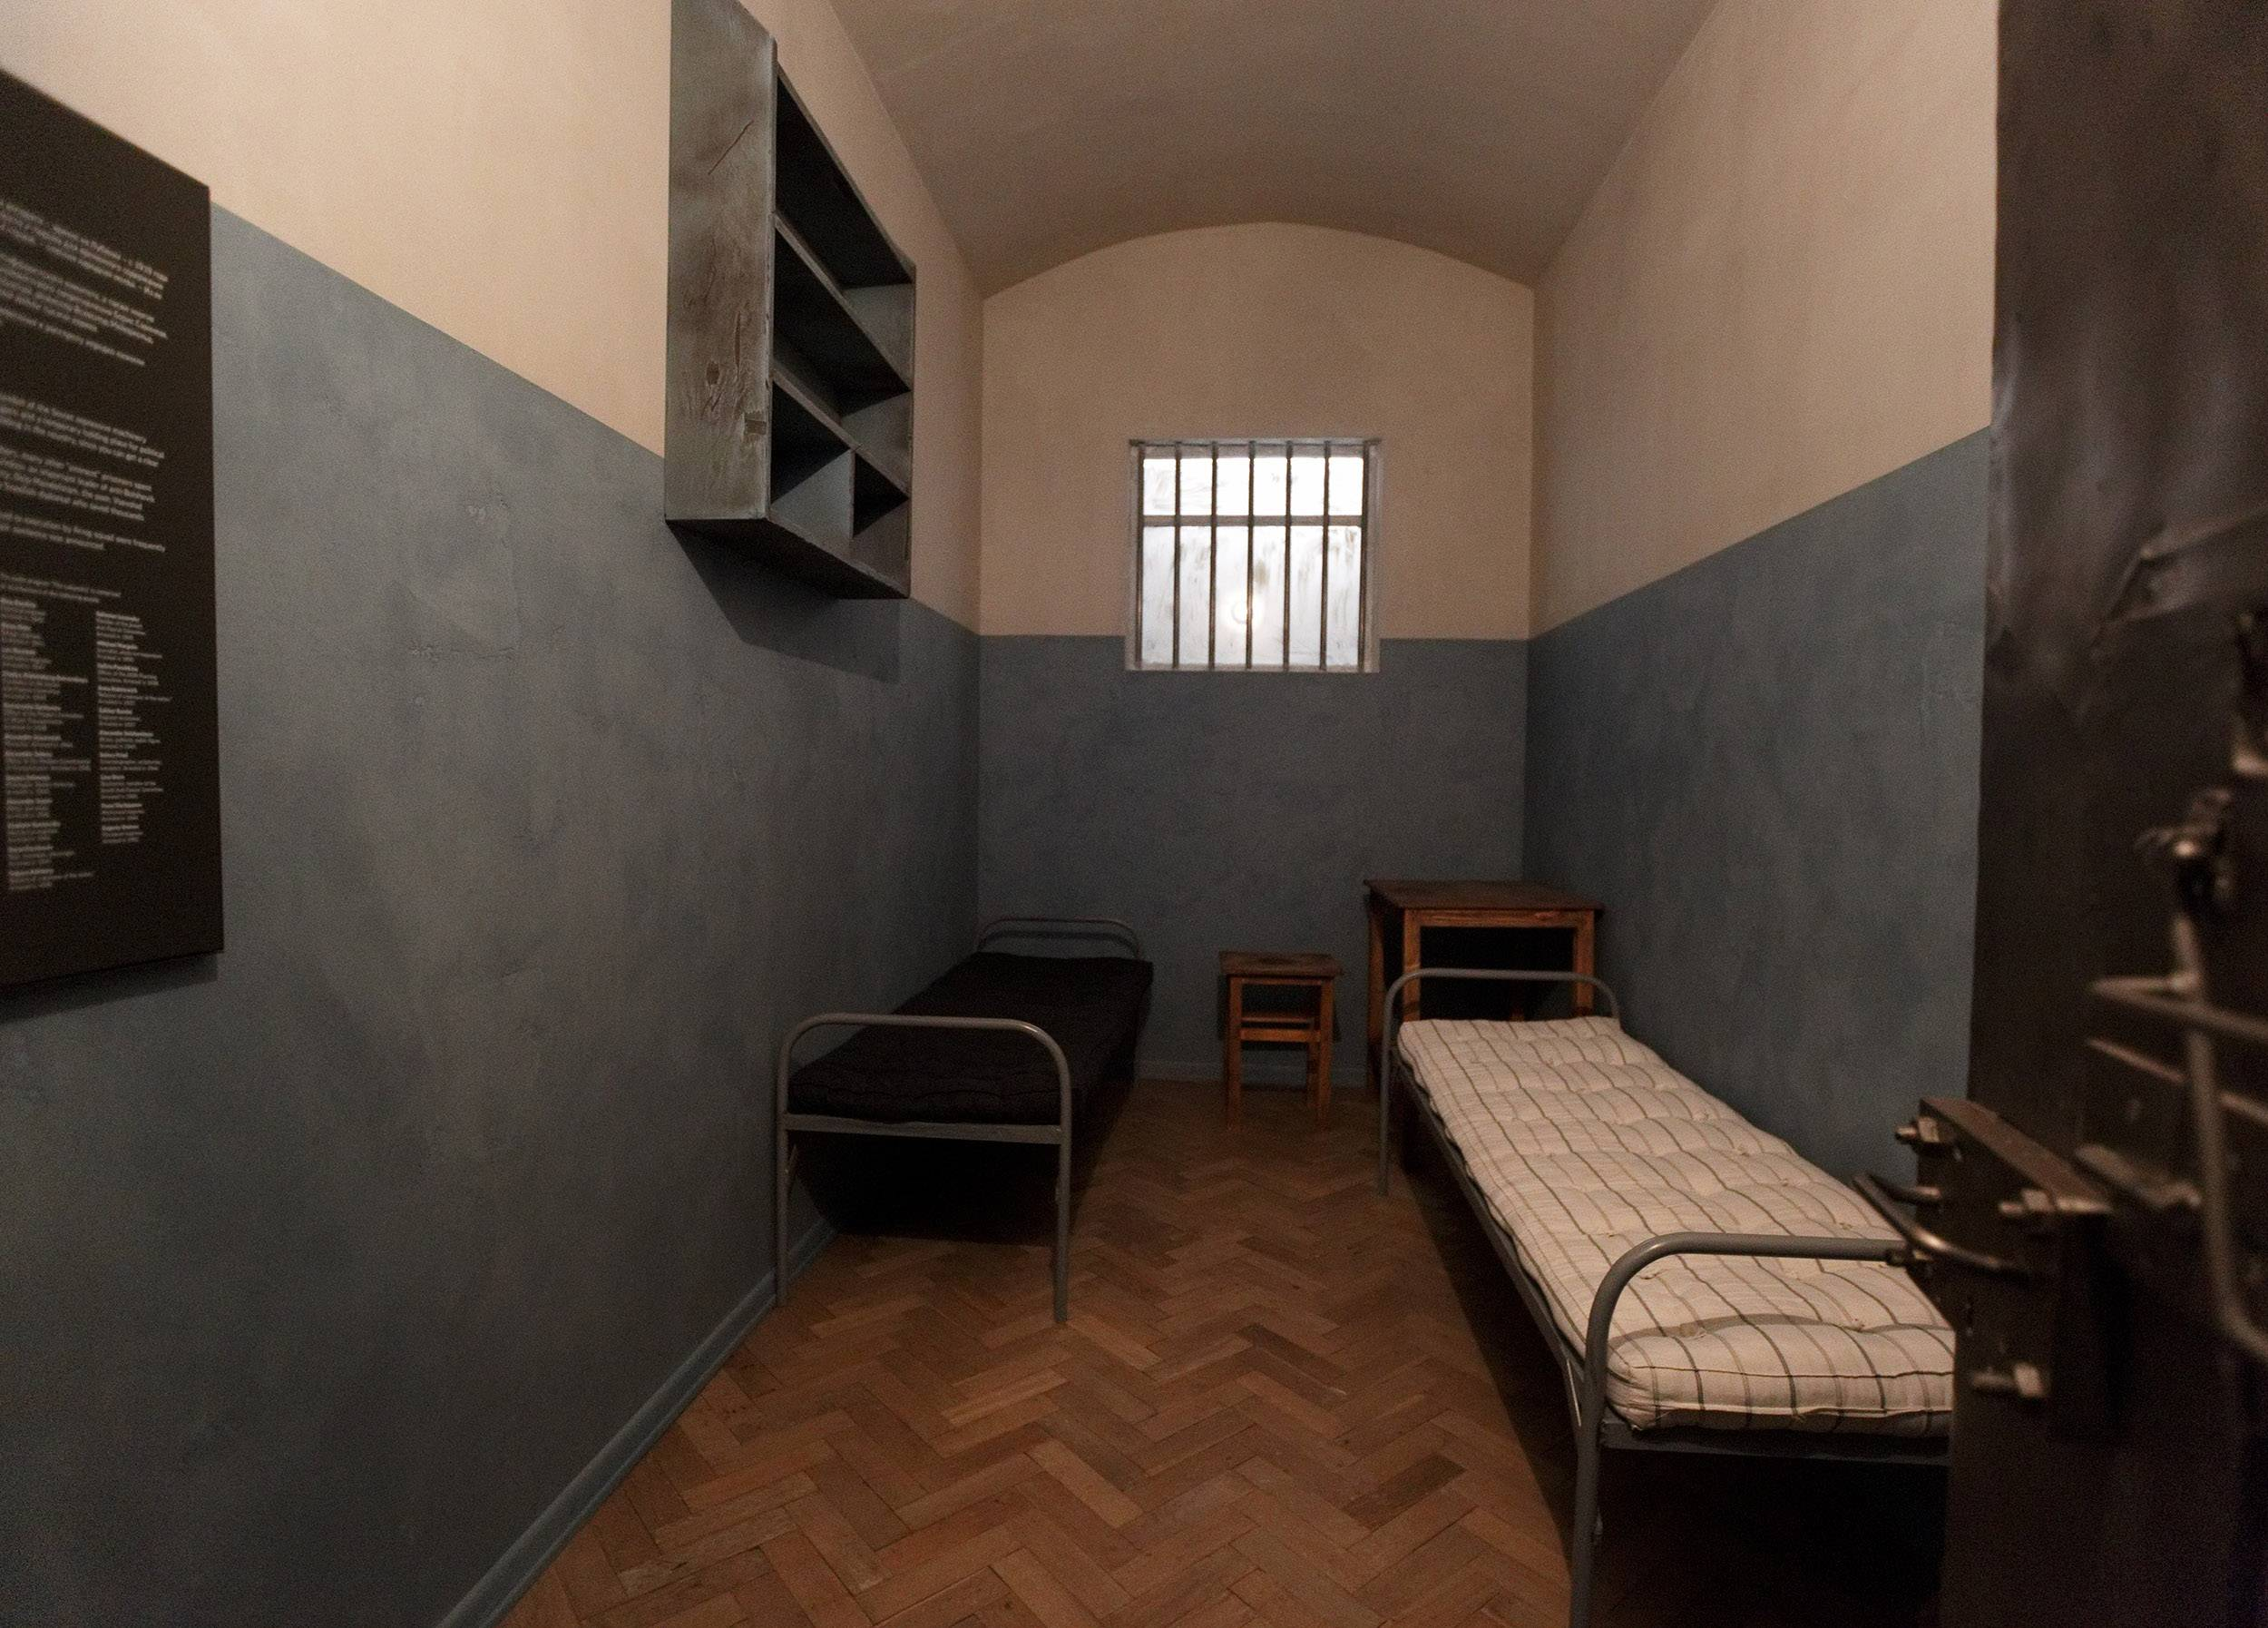 Lorem Ipsum designed and constructed a replica of a KGB prison cell within the exhibit.